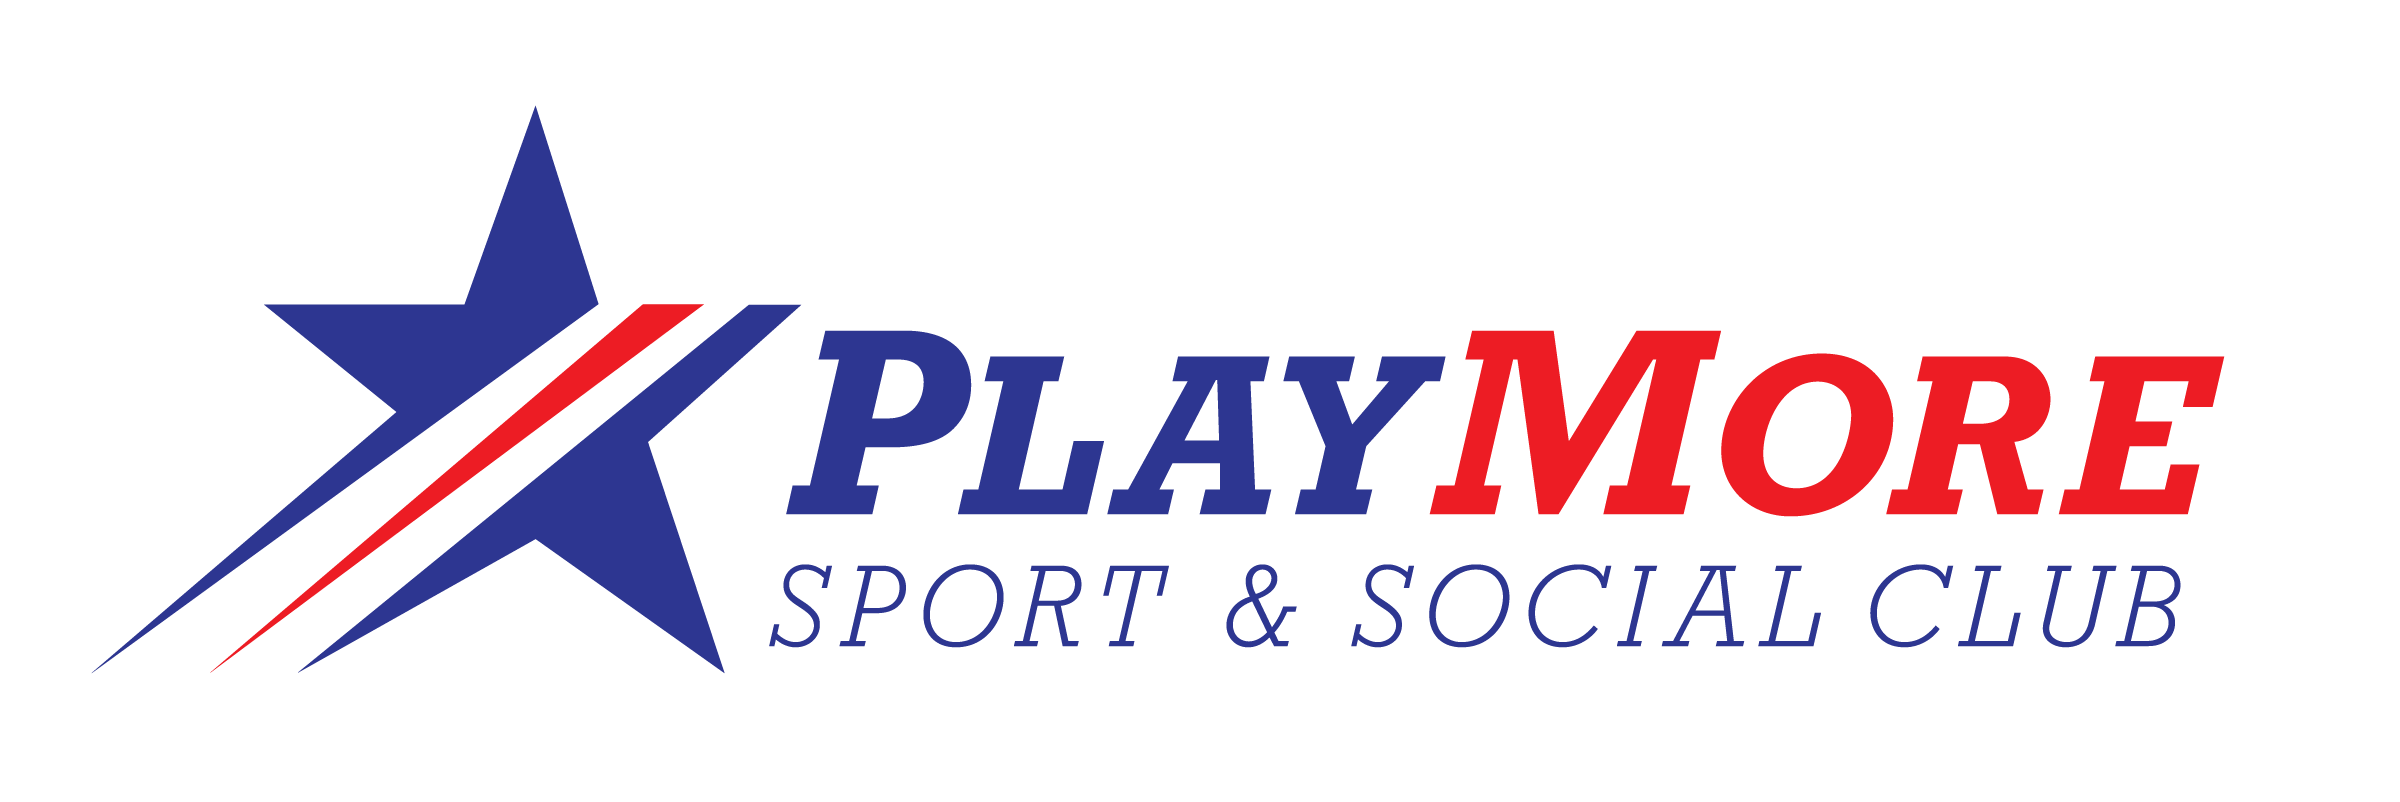 PlayMore Sport & Social Club Logo